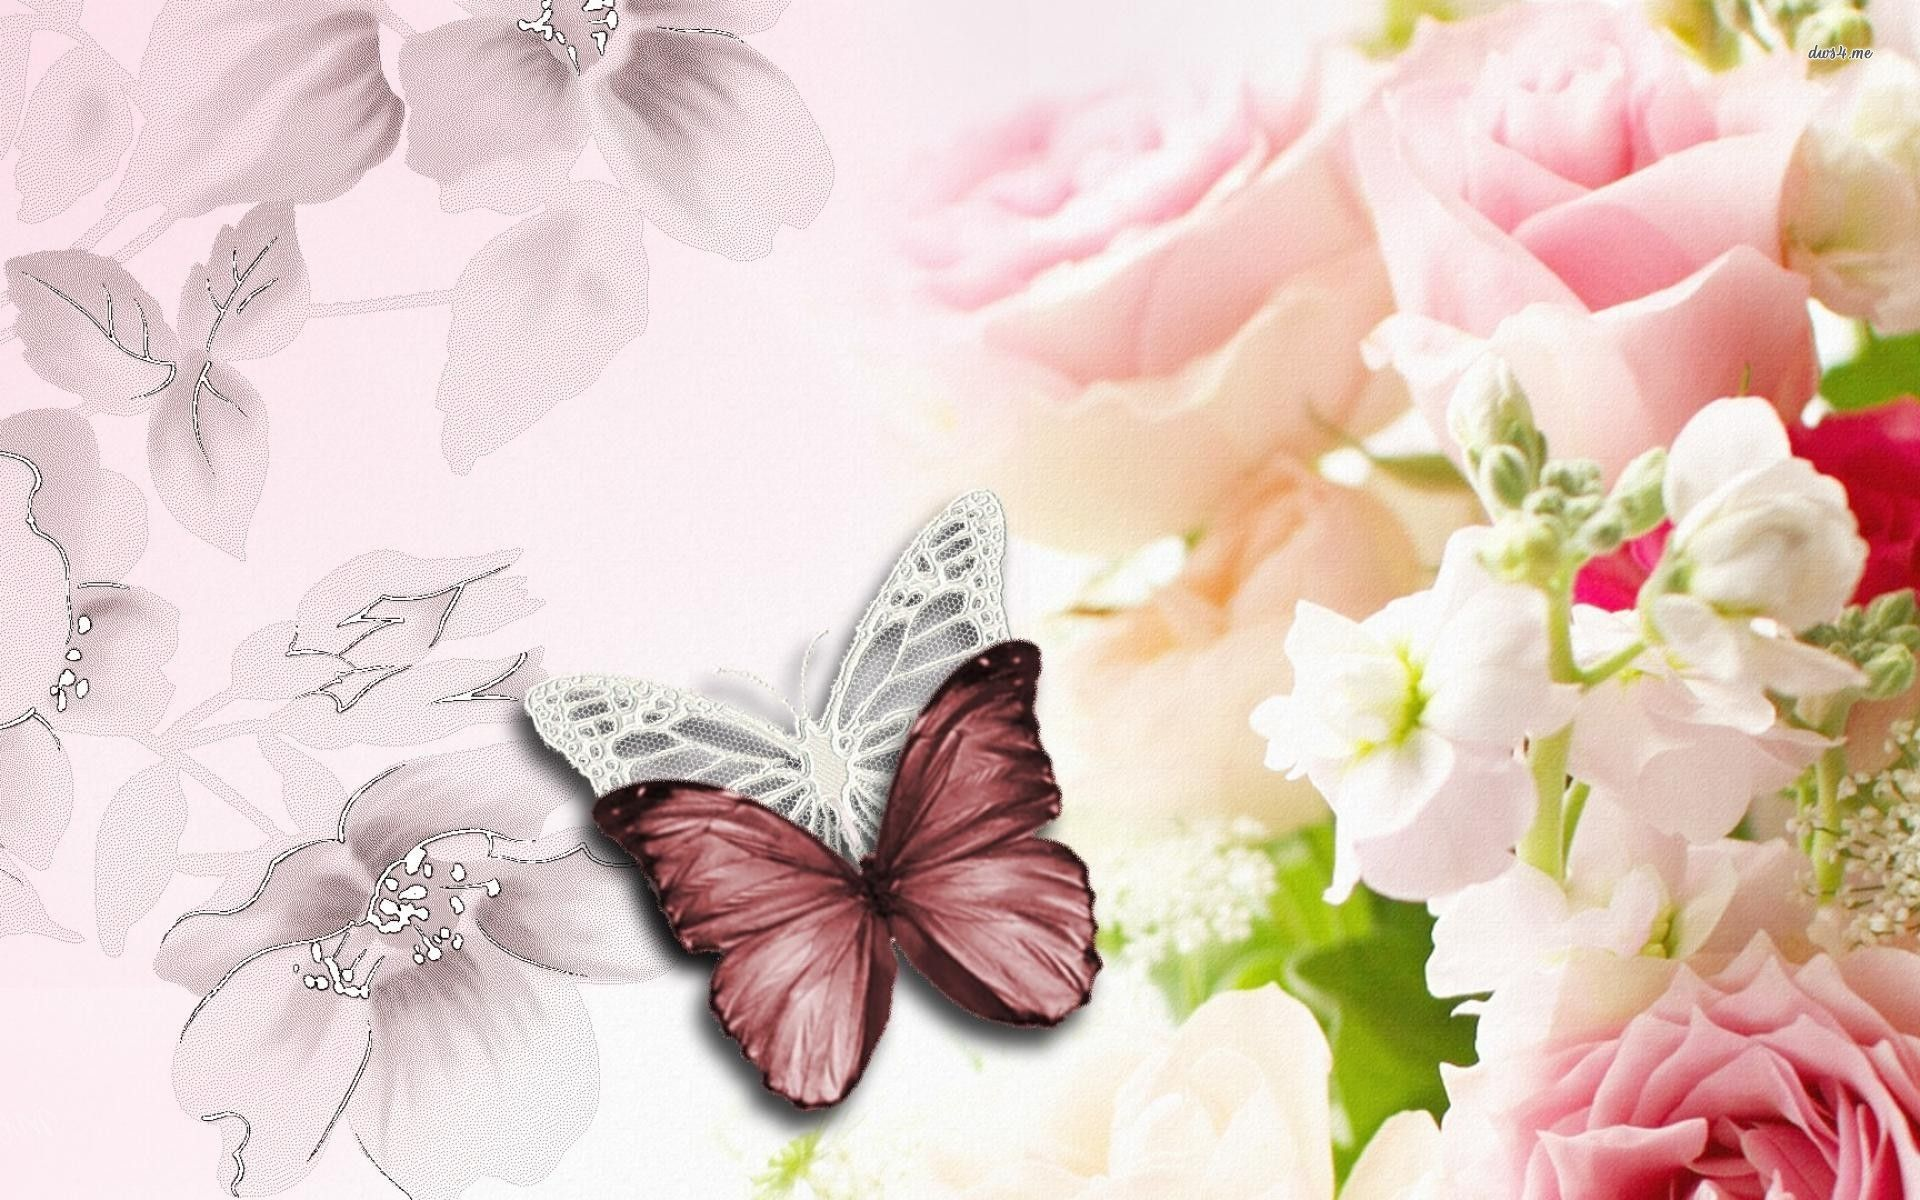 flowers and butterflies wallpaper - digital art wallpapers - #7284